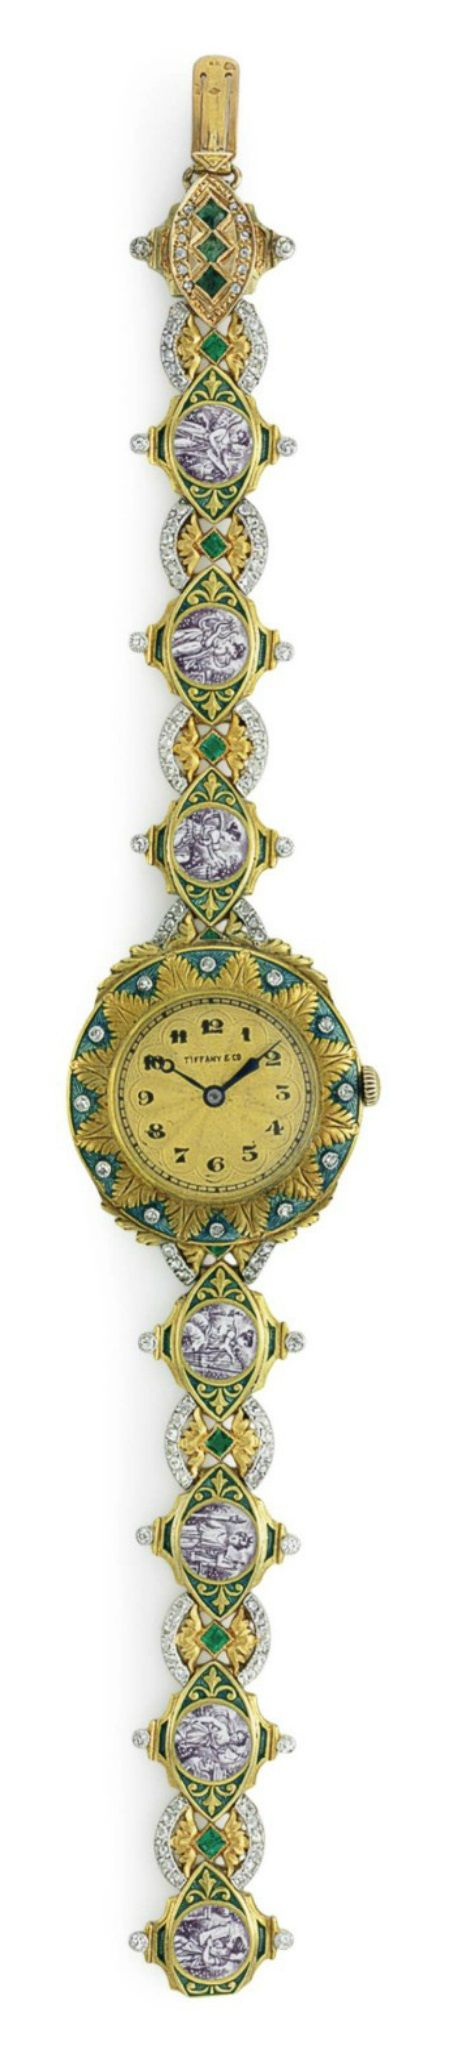 TIFFANY & CO.: AN ANTIQUE ENAMEL, DIAMOND AND EMERALD WRISTWATCH, CIRCA 1910. The circular guilloché dial with black Arabic numerals and blued-steel hands, within a rose-cut diamond, blue guilloché enamel surround, to the sculpted gold and blue guilloché enamel panel bracelet, depicting female mythological figures, enhanced by calibré-cut emeralds and rose-cut detail, with French assay marks for 18k gold, signed Tiffany & Co., with maker's mark for Henri Husson. #Husson #Tiffany #watch…